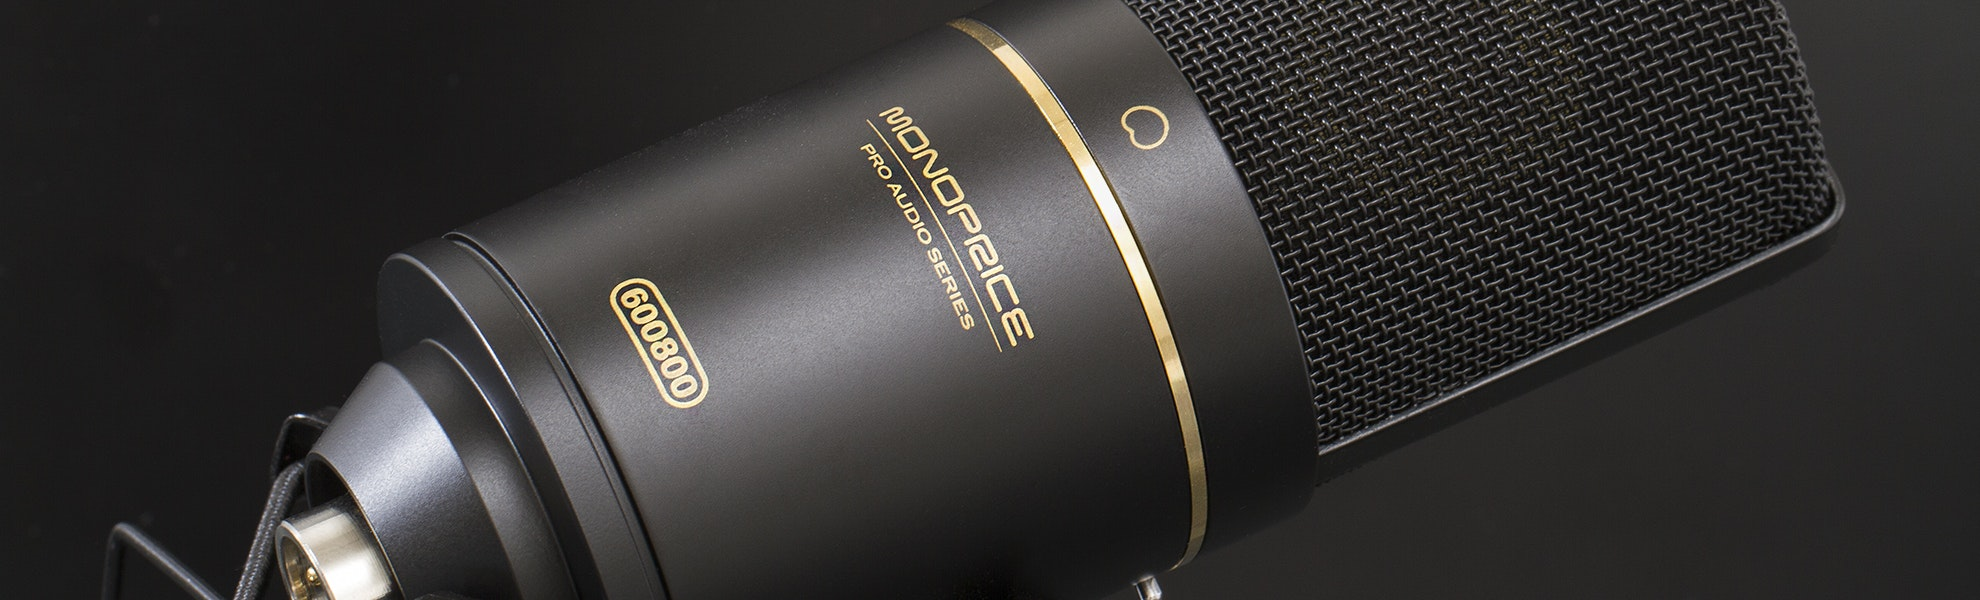 Monoprice Large Diaphragm Studio Microphone